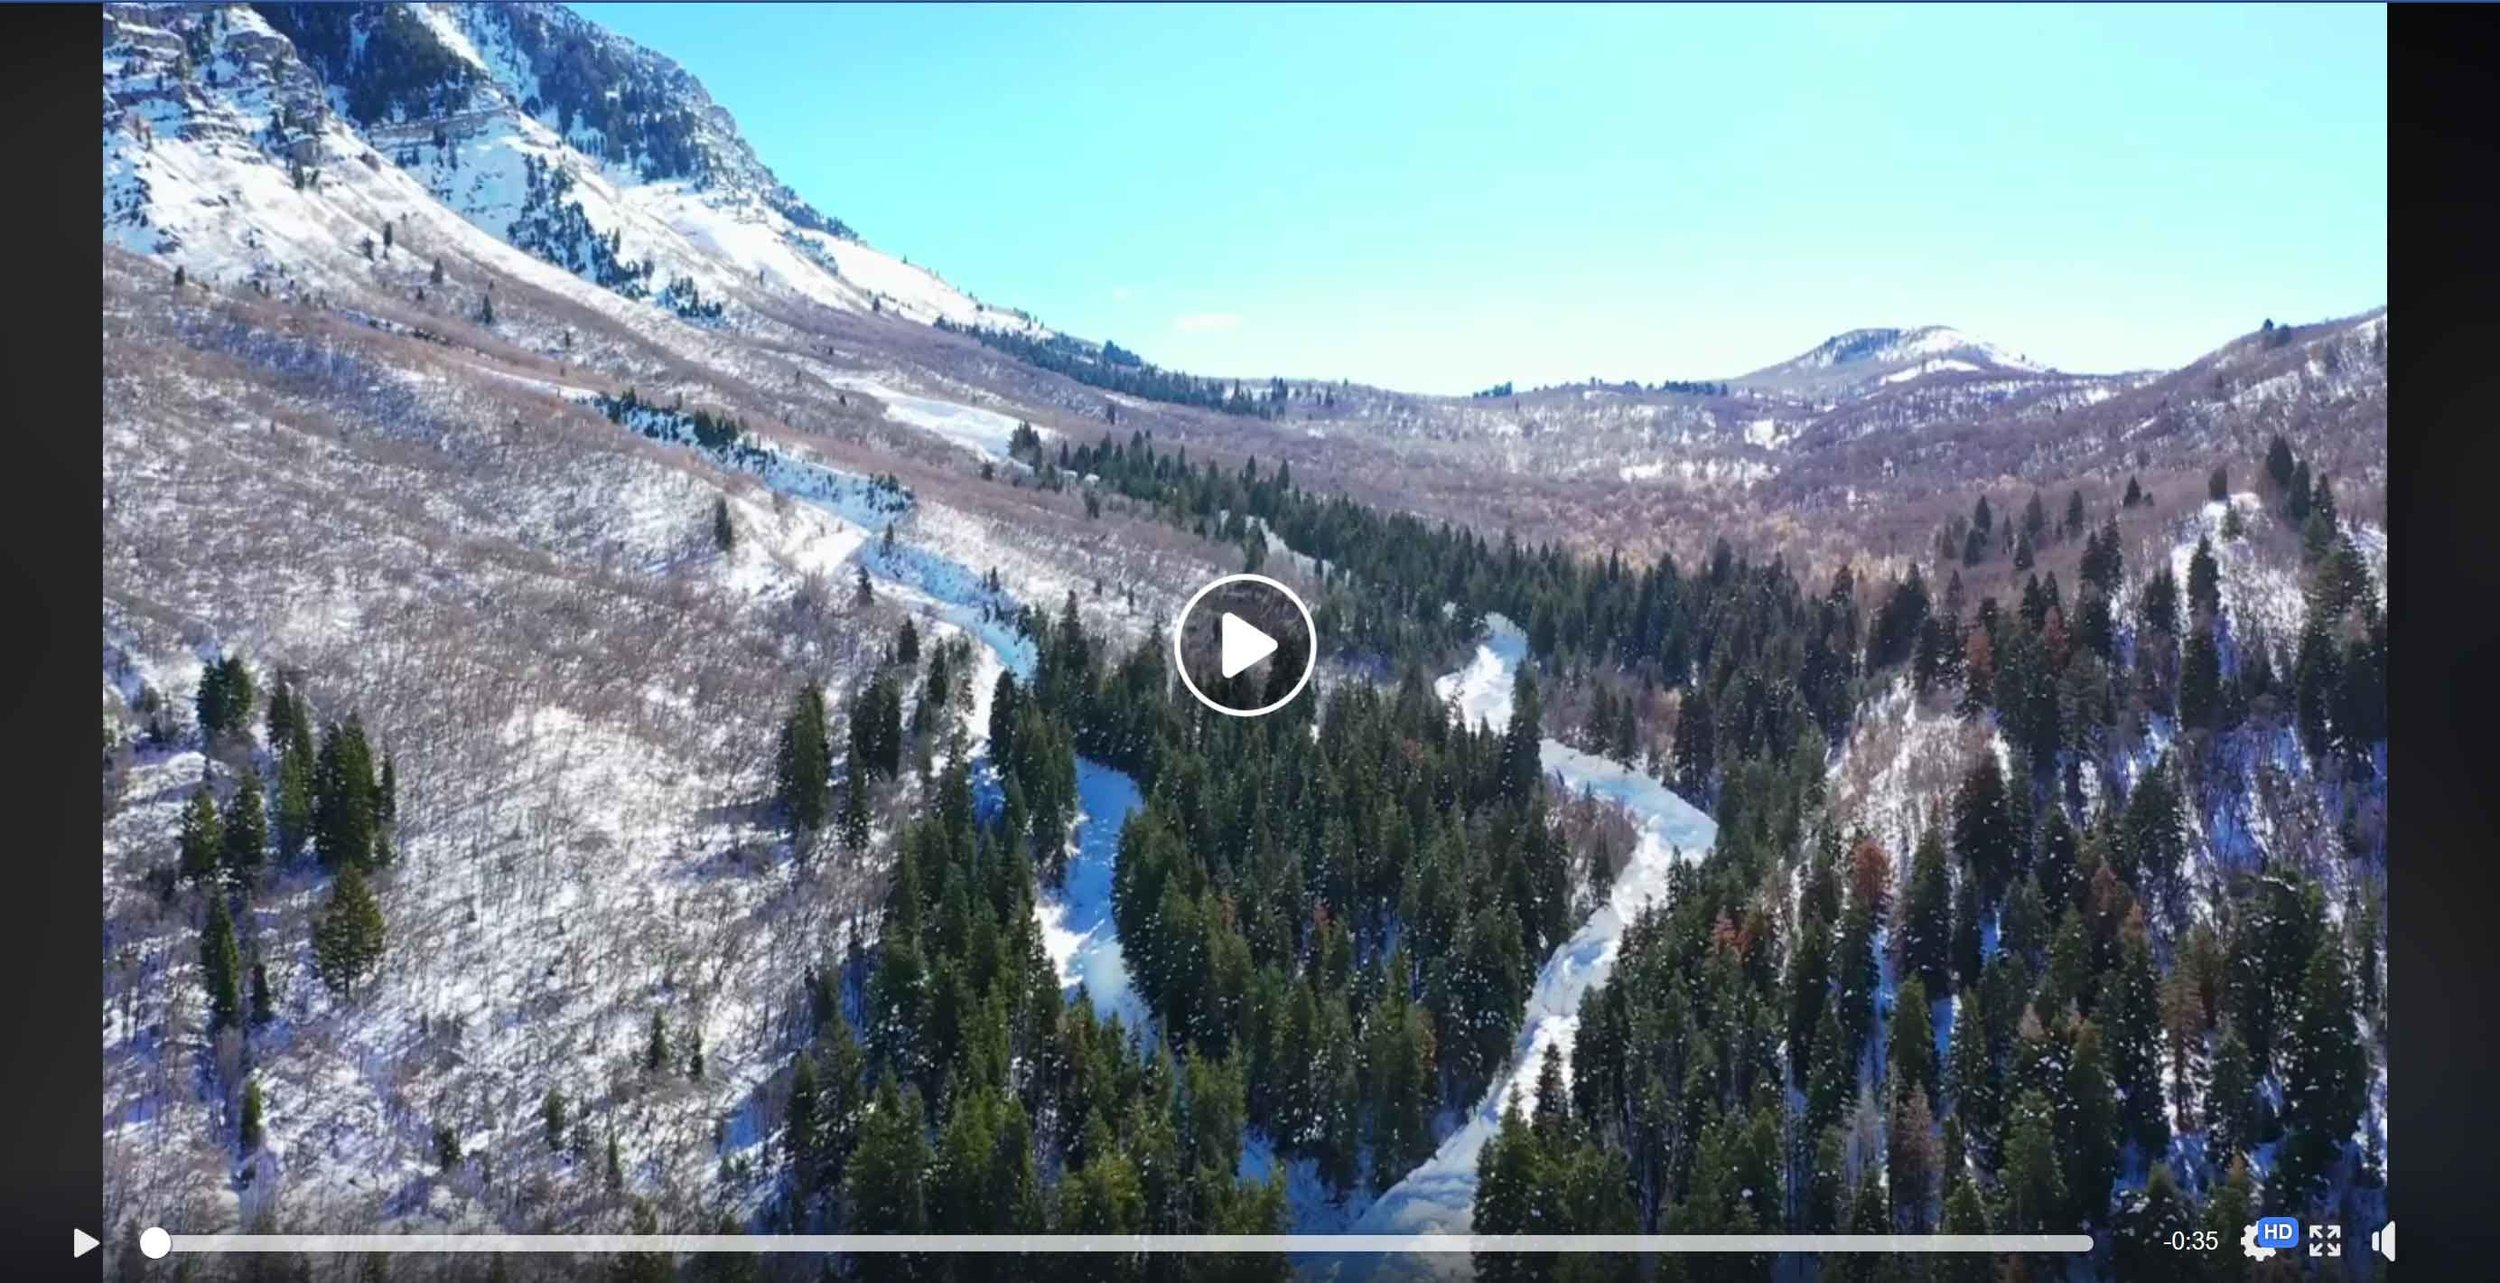 """Video on Facebook  by Matt Galland – """"The True power of Nature. Aftermath of Cascade avalanche in Provo, Ut. 2019."""" Video shot from a drone showing more close-up perspective of the run-out zone. Again, it's amazing the height of the slide path as gauged by how relatively small Matt is. He estimates the depth to be about 40 feet. (Posted on FB Feb. 1, 2019.)"""